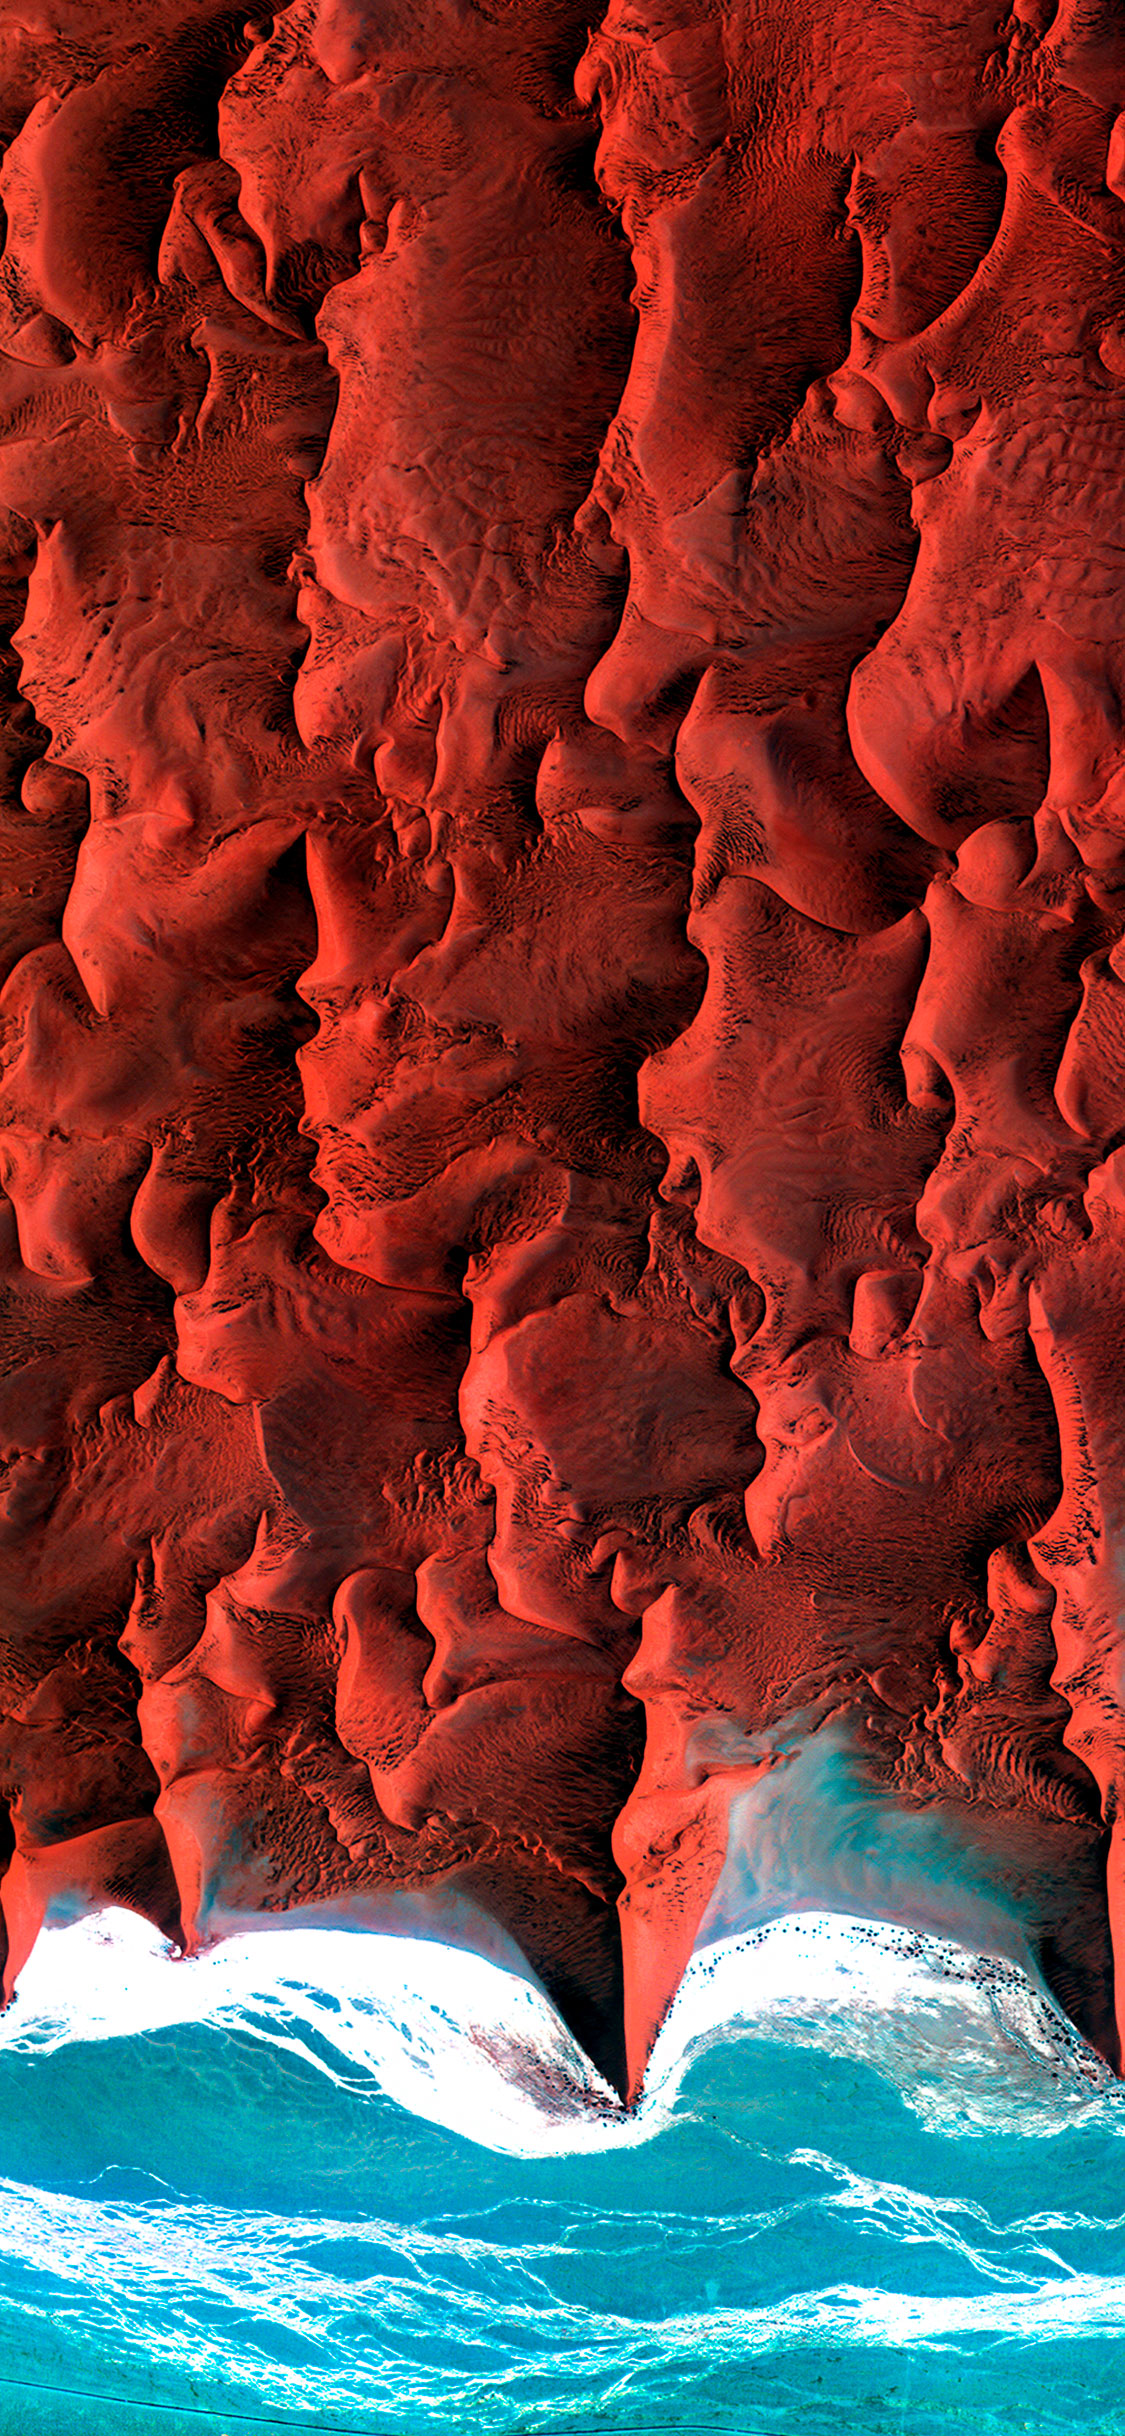 iPhone wallpaper namib desert Desert